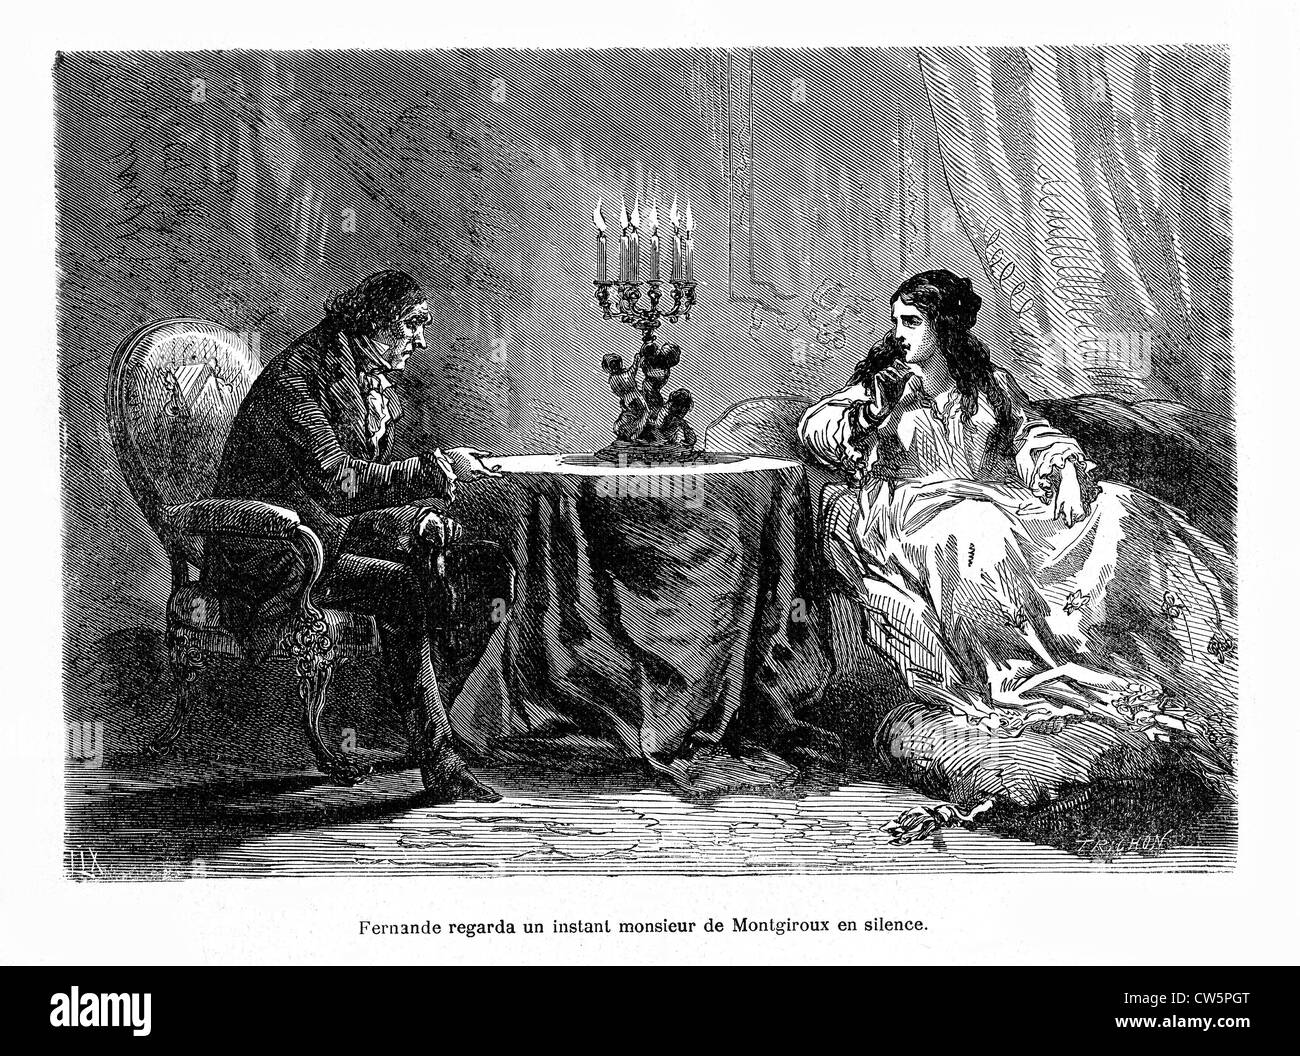 Fernande: The Story of a Courtesan - Stock Image